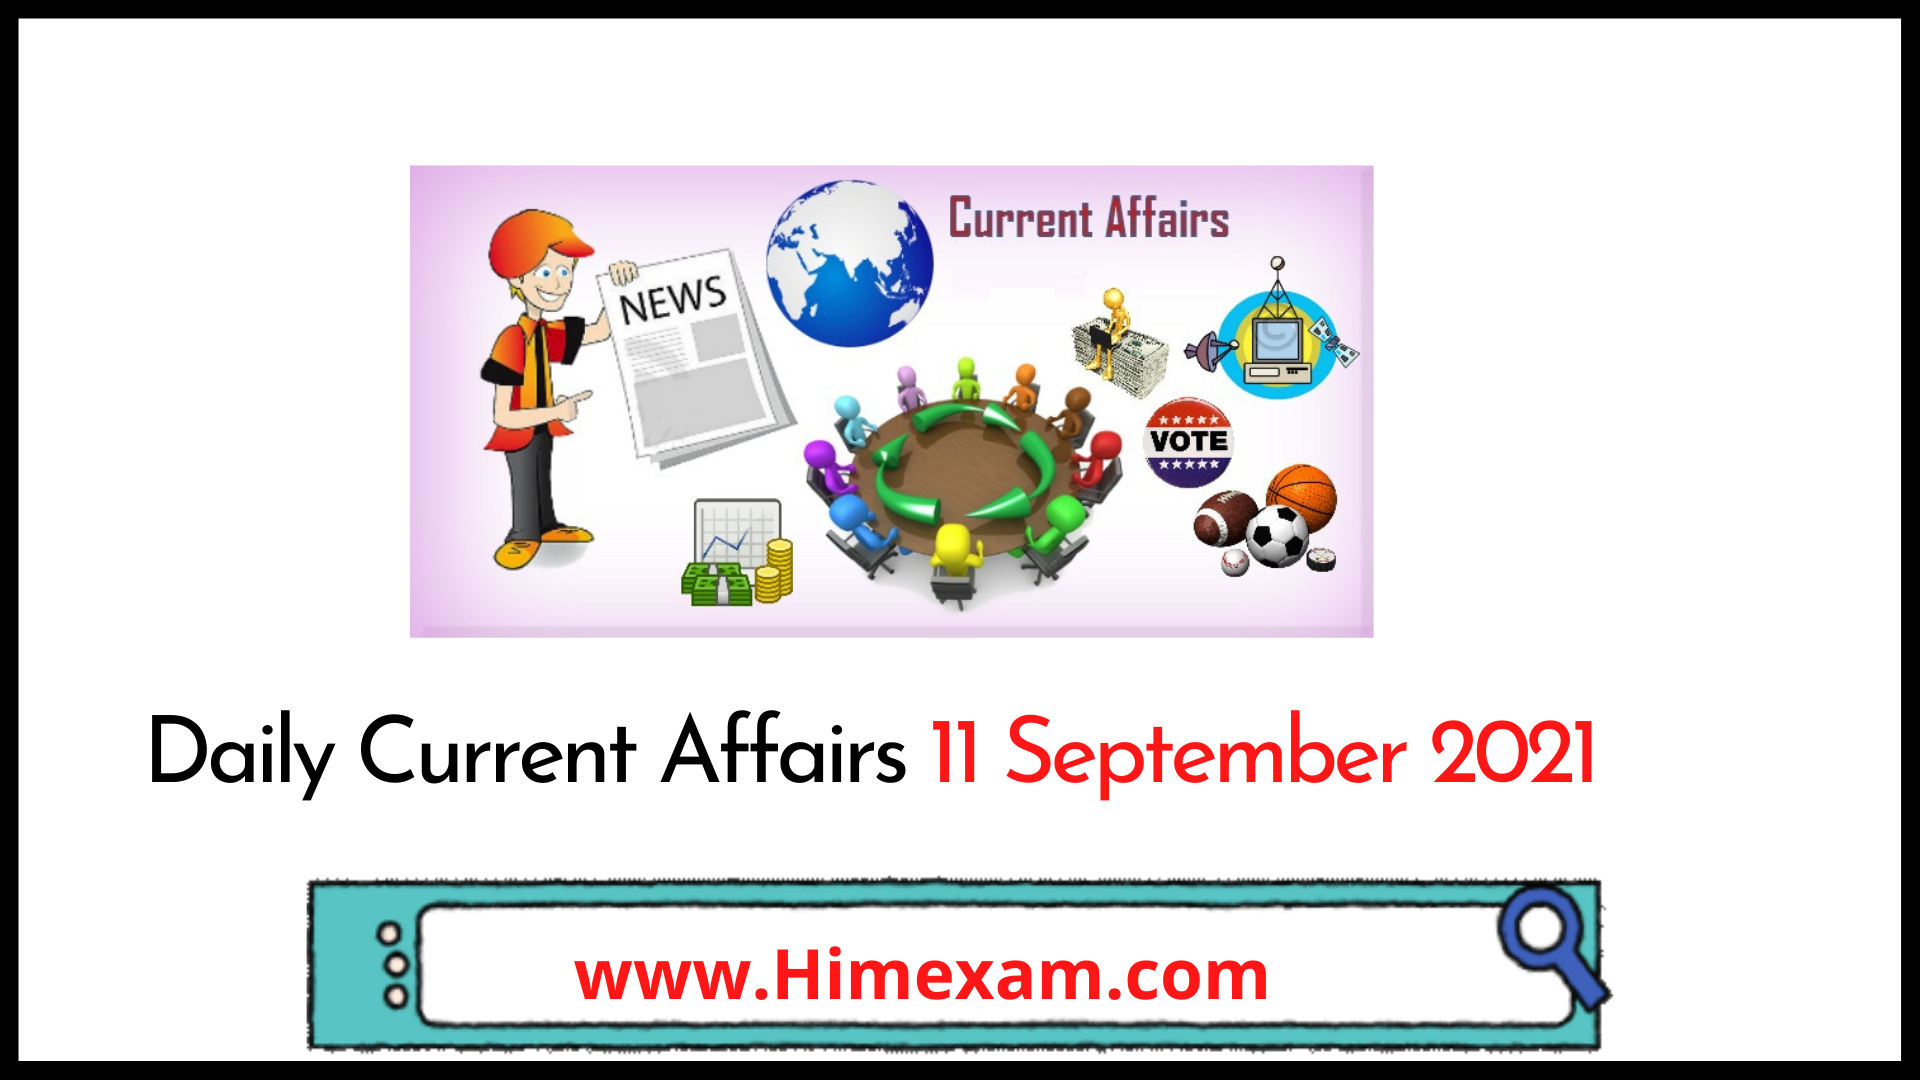 Daily Current Affairs 11 September 2021